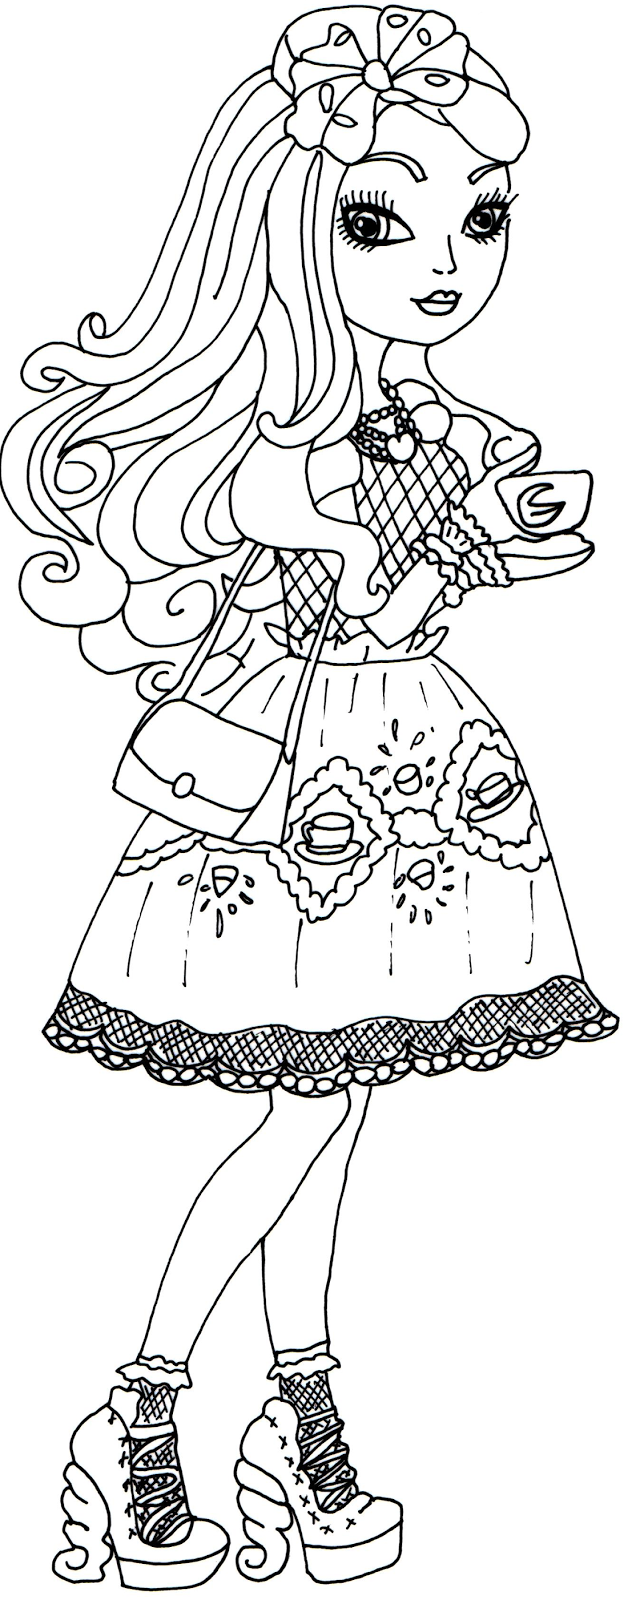 Free Printable Ever After High Coloring Pages: Apple White